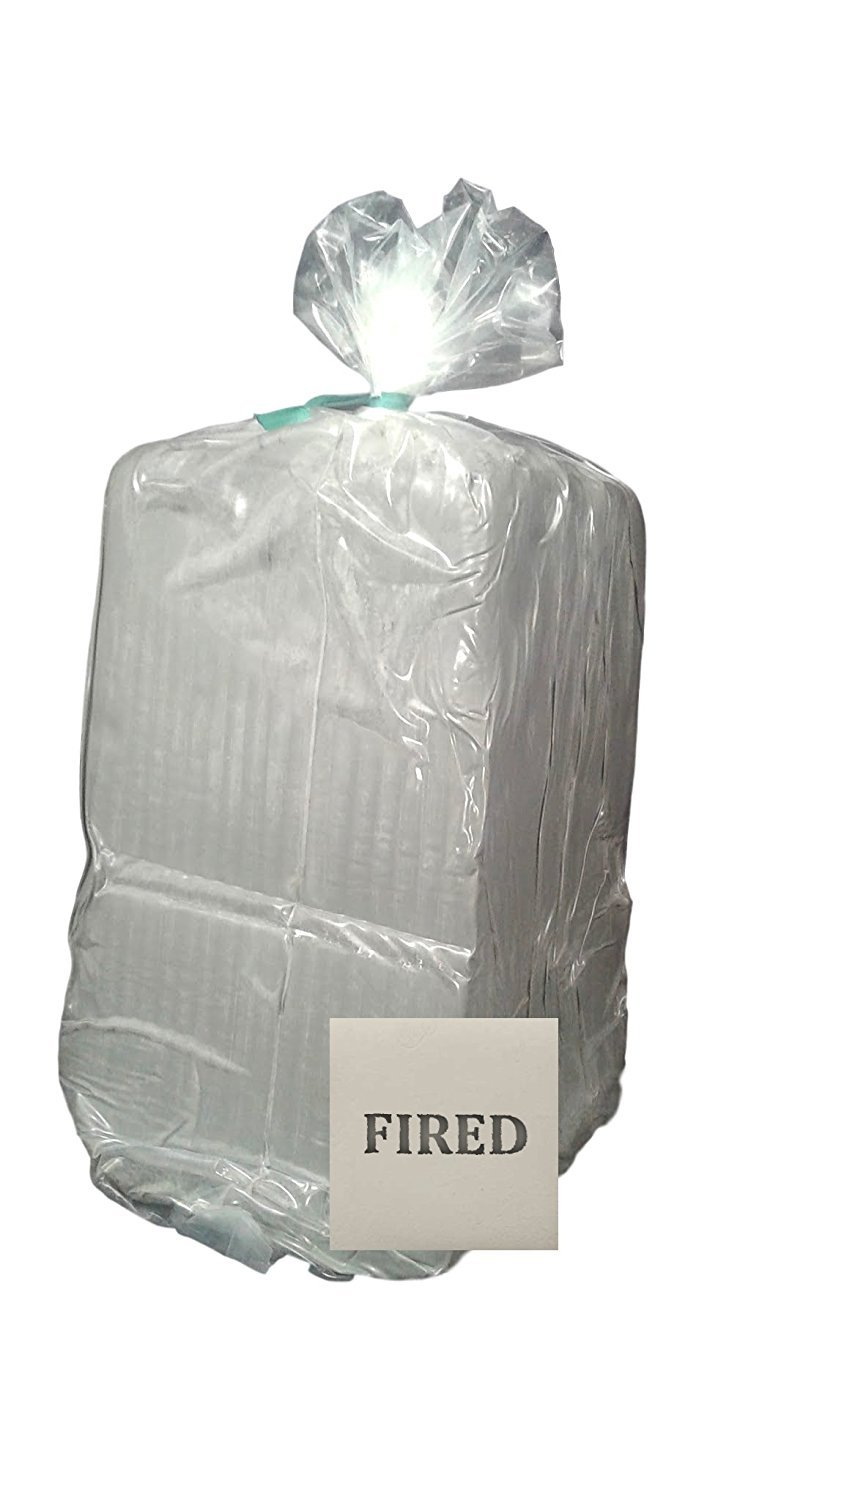 Aurora Pottery - Whiteware Clay (Lo-Fire) - EM-342 - Pottery Clay Fires White - Smooth Texture (25 Pounds) by Aurora Pottery